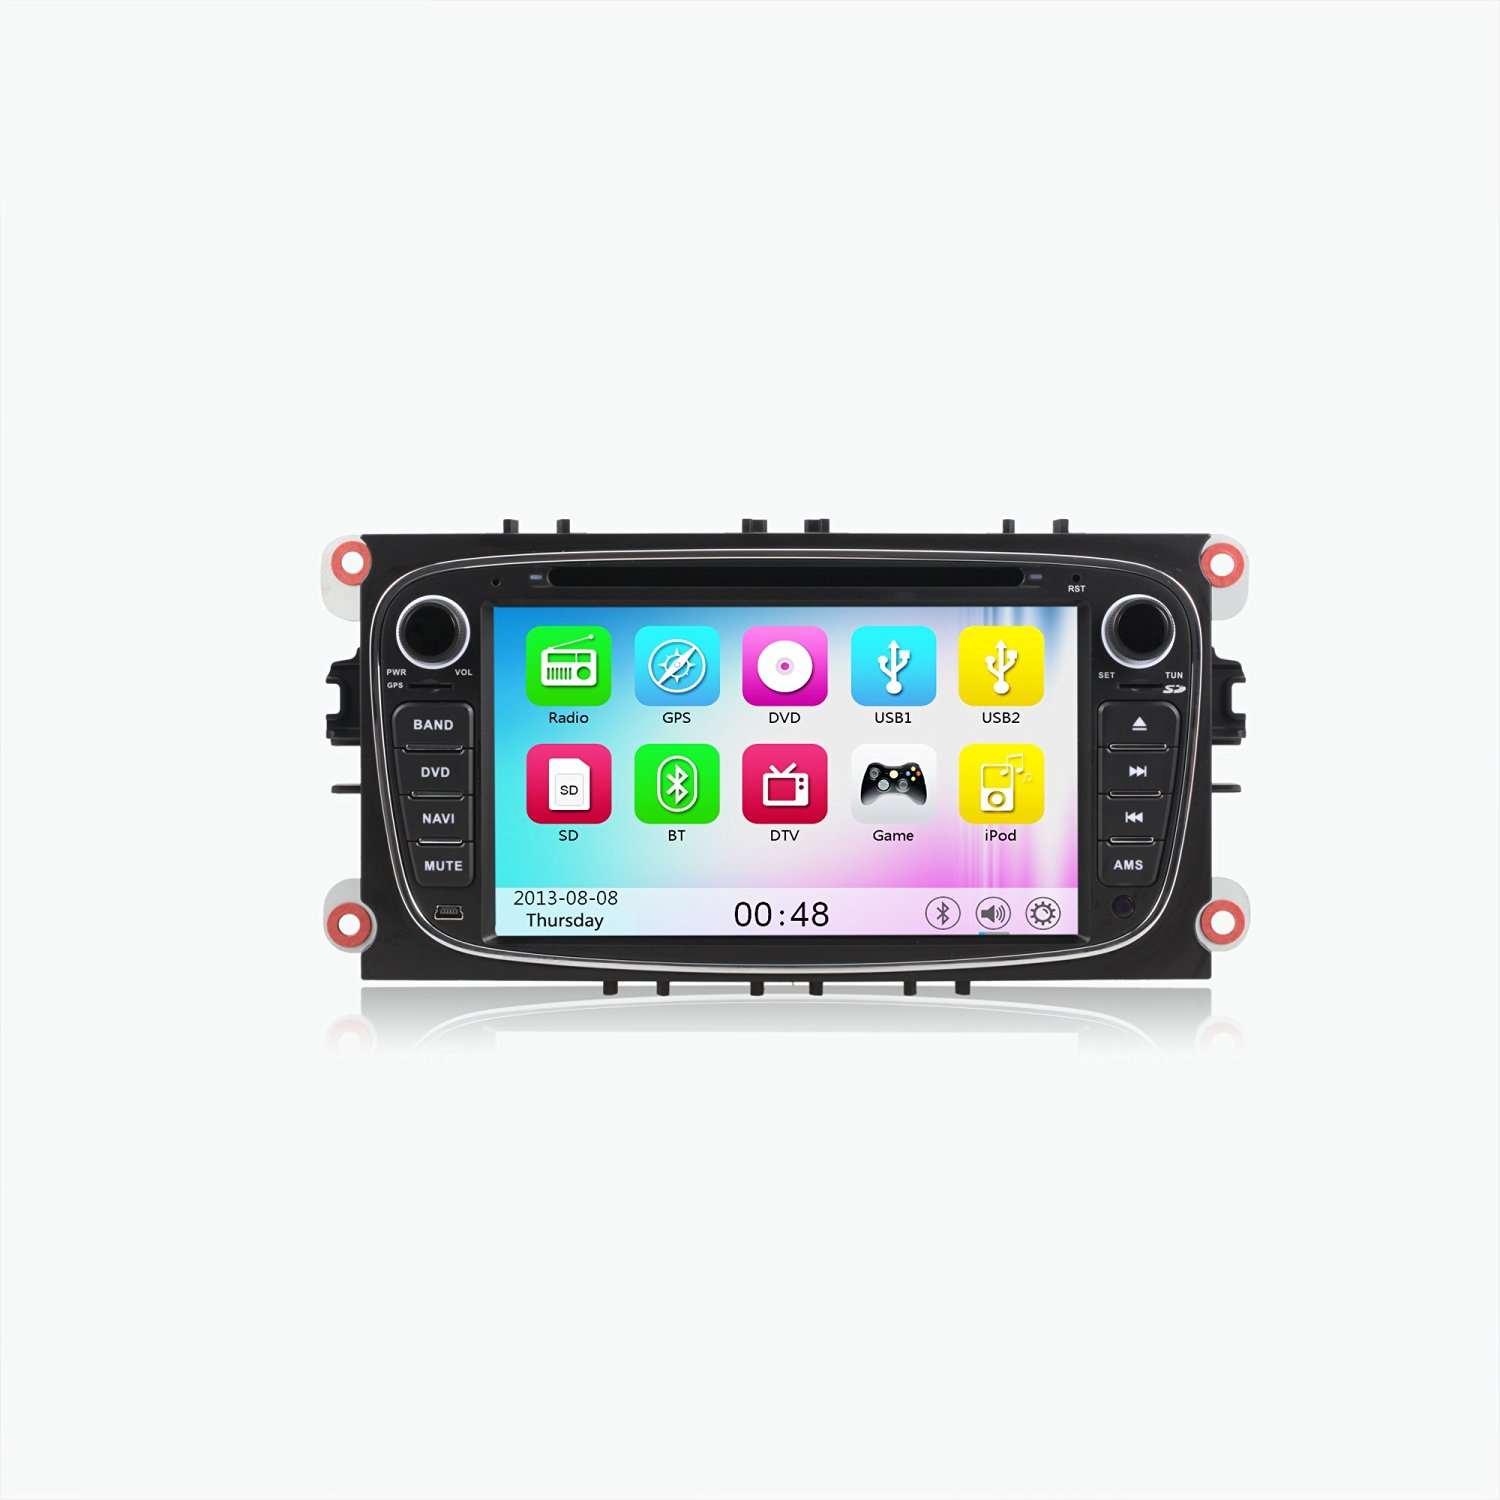 7 Touchscreen Monitor Car Gps Navigation System For Ford Focus 2007 2010